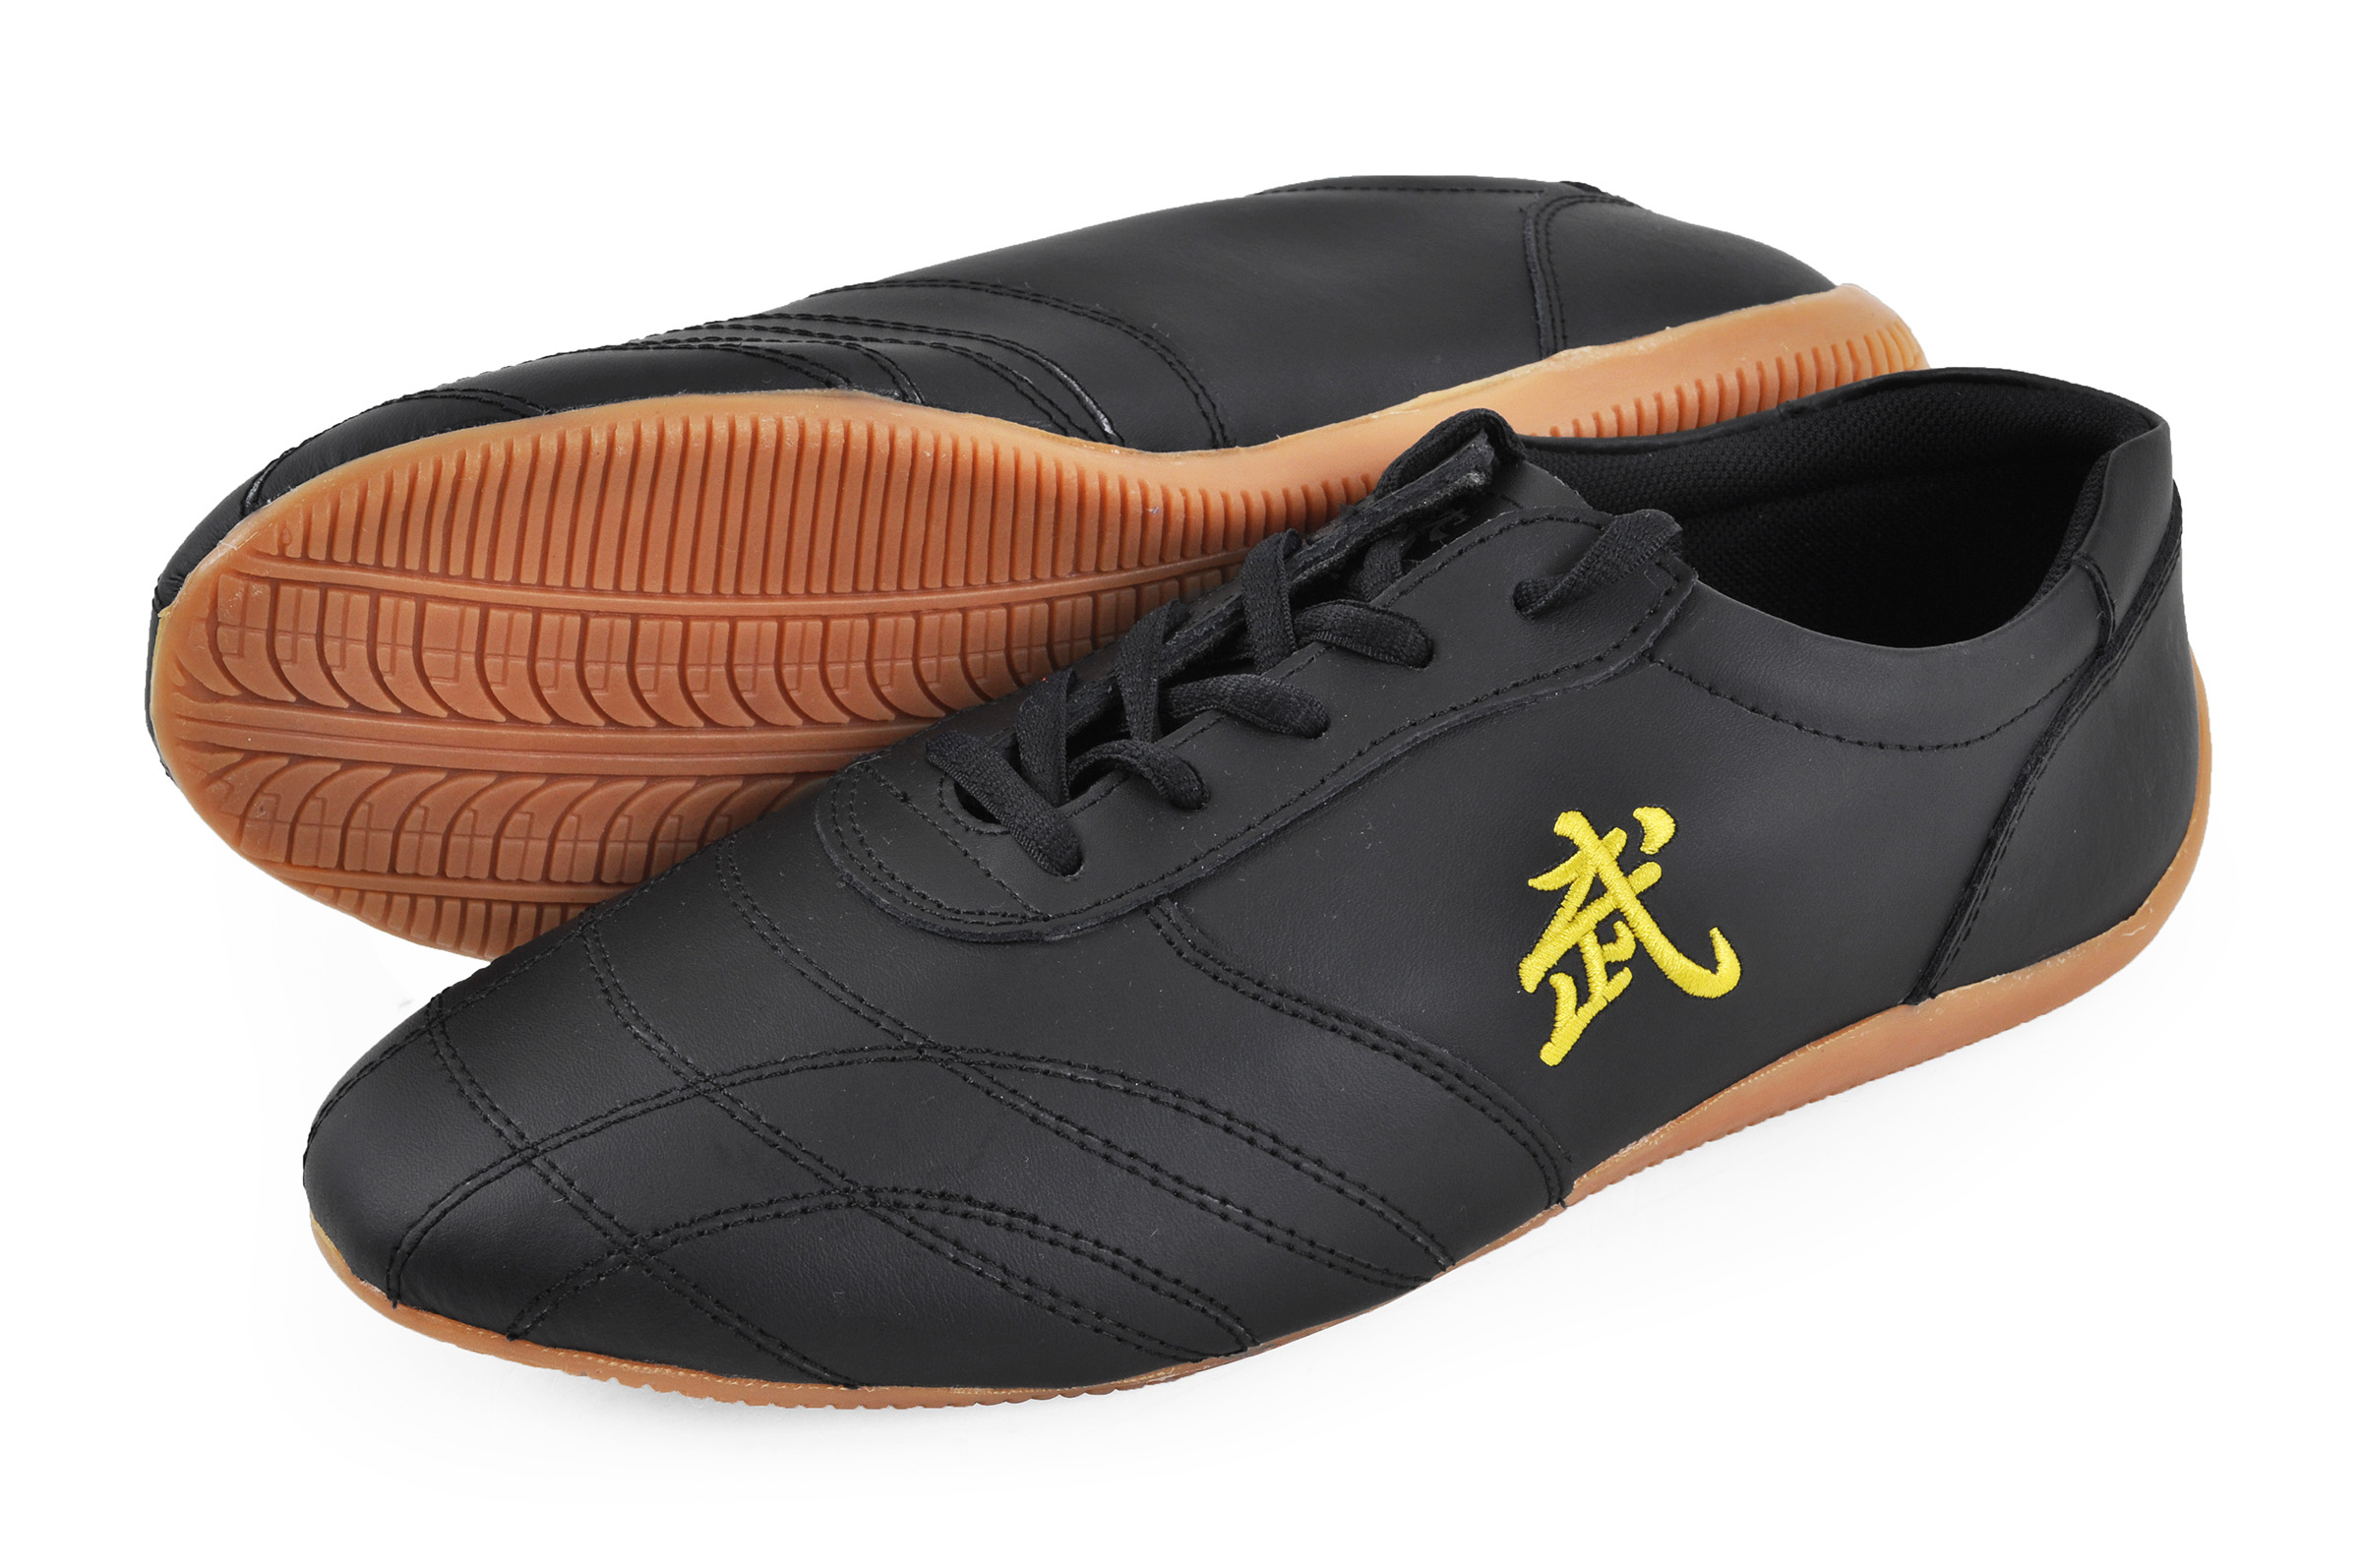 Chaussure kung fu intersport for Piscine querqueville